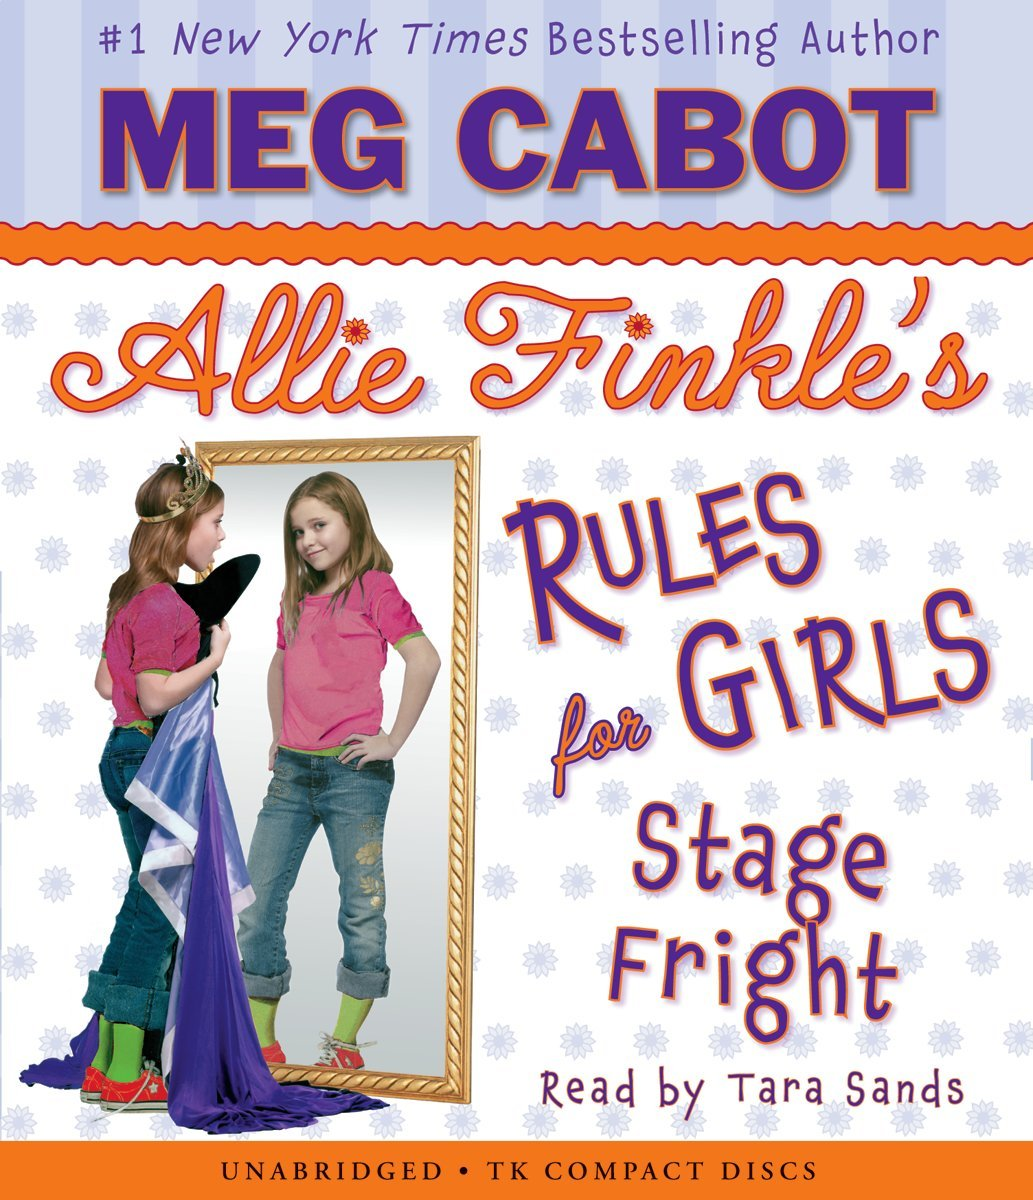 Allie Finkle's Rules for Girls: Stage Fright Synopsis